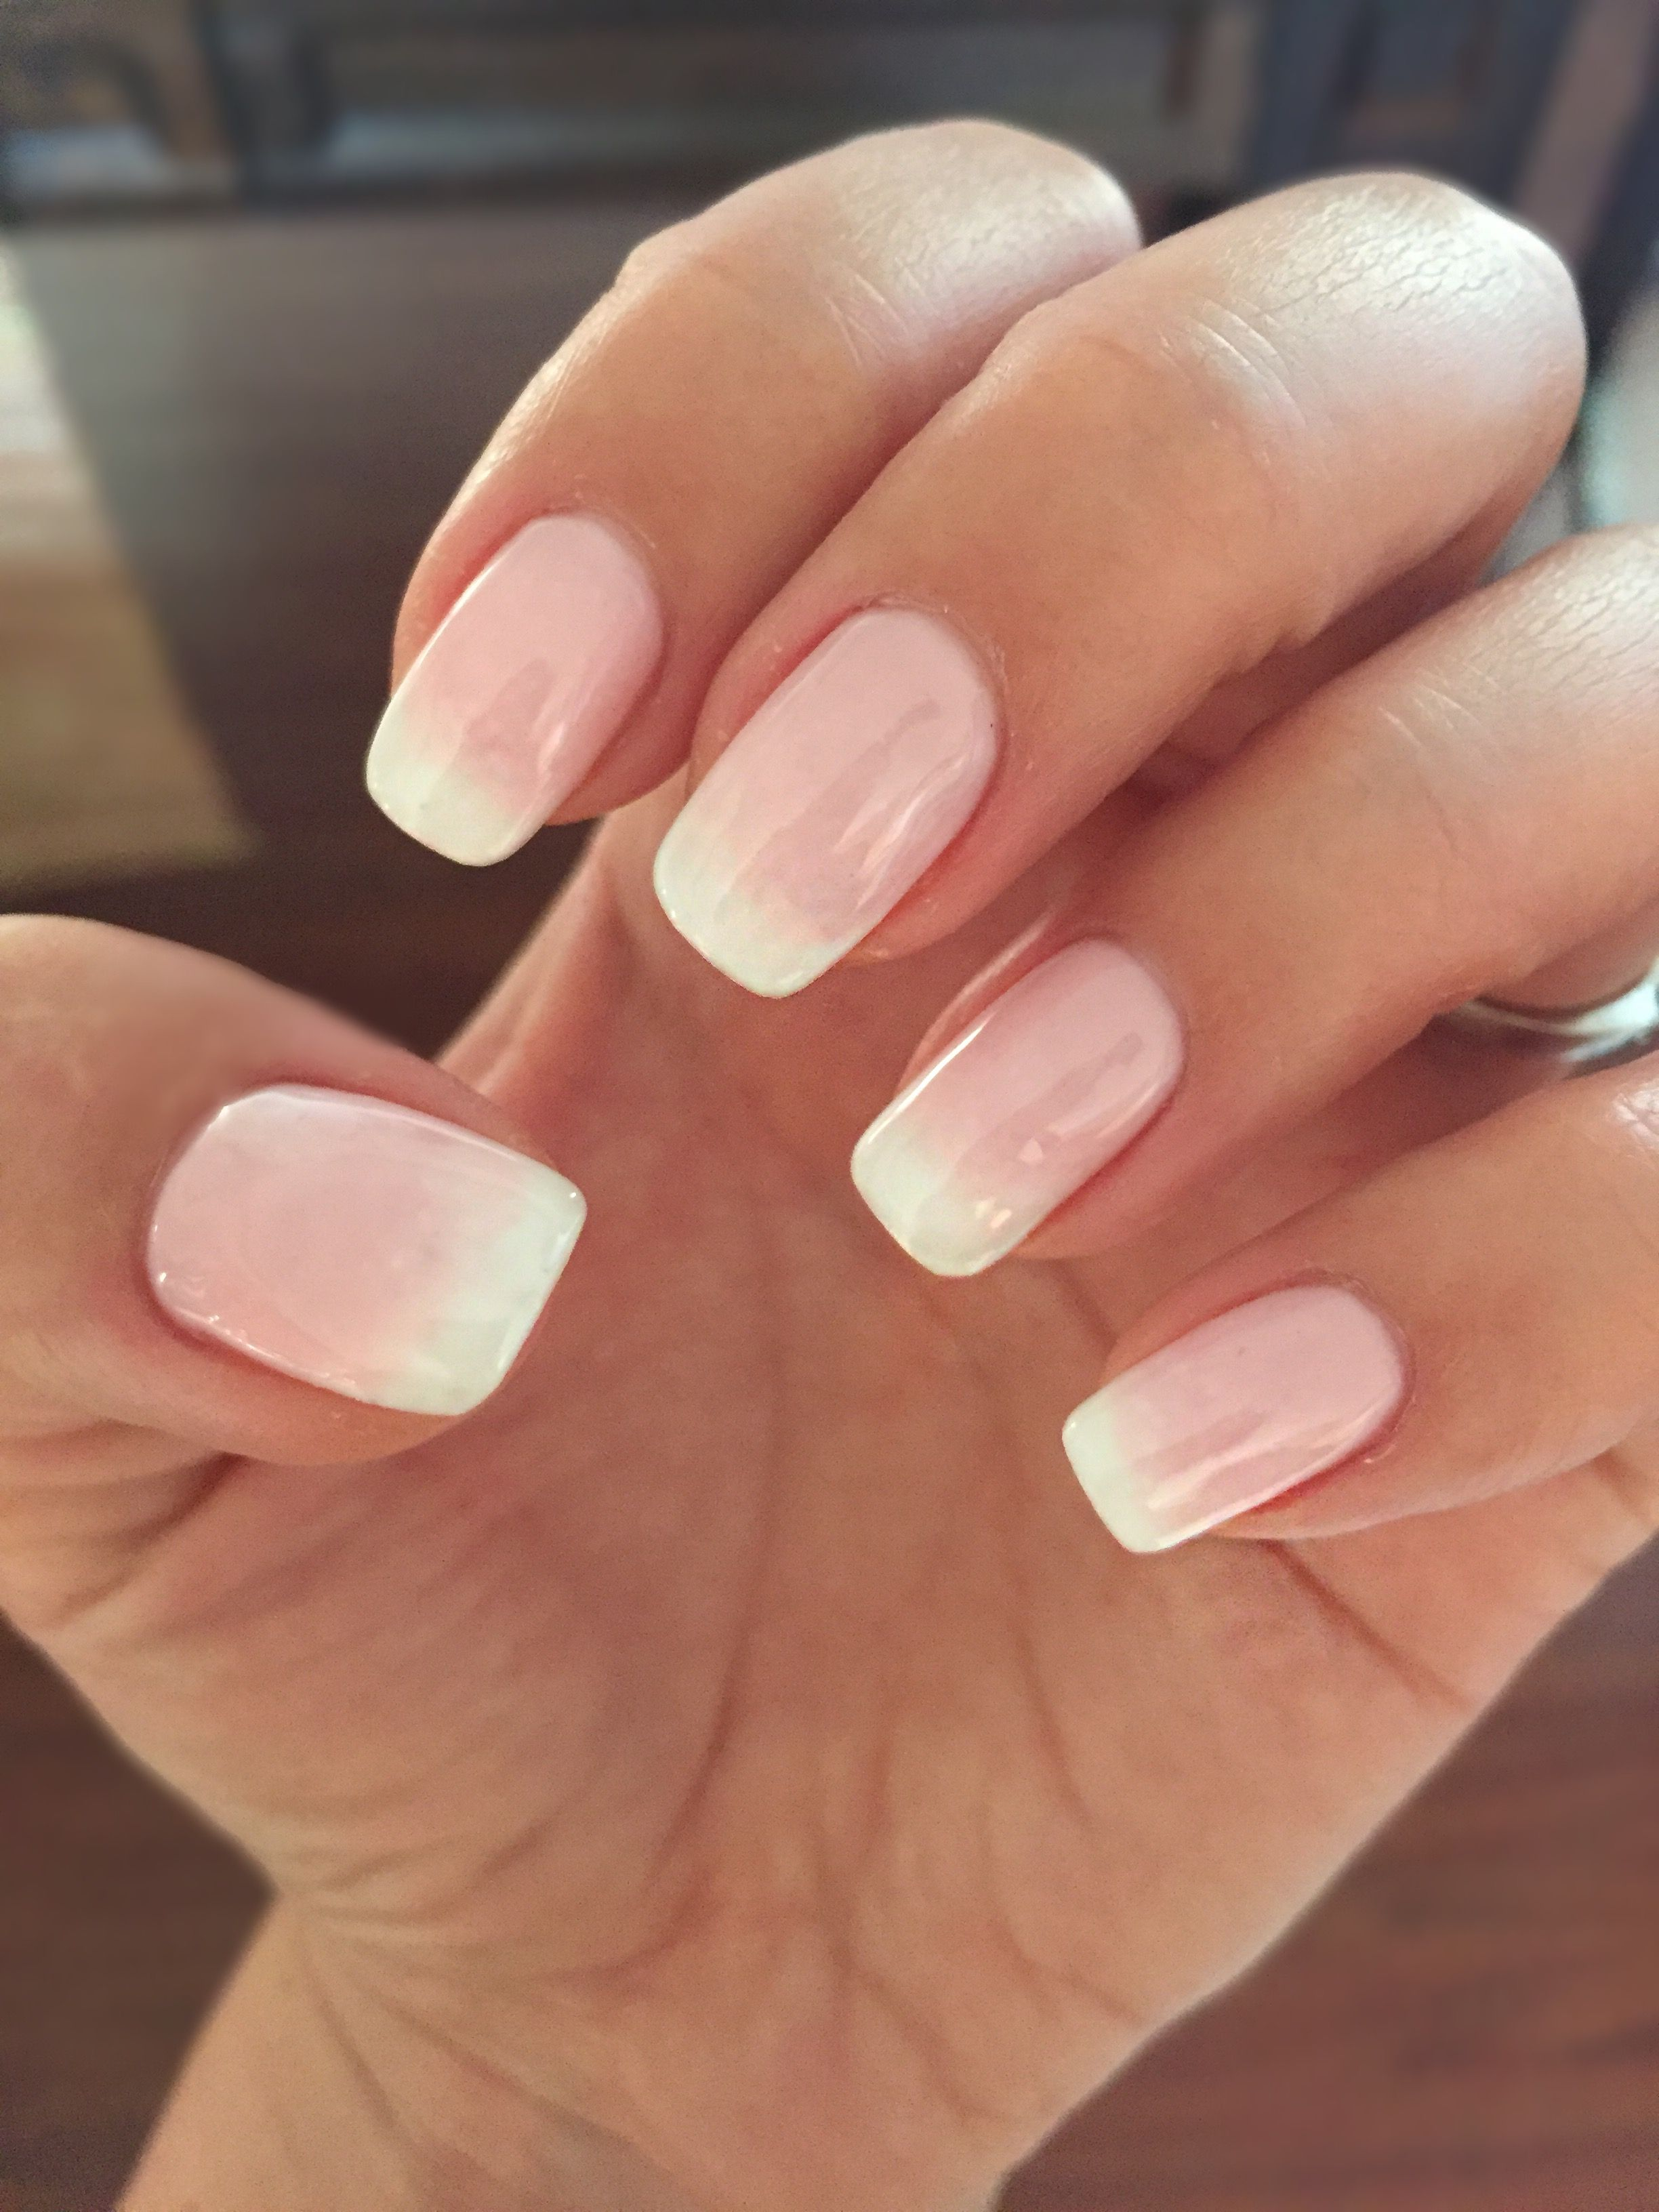 Ombre Shellac American Manicure Nails Ombre Shellac Pink Gel